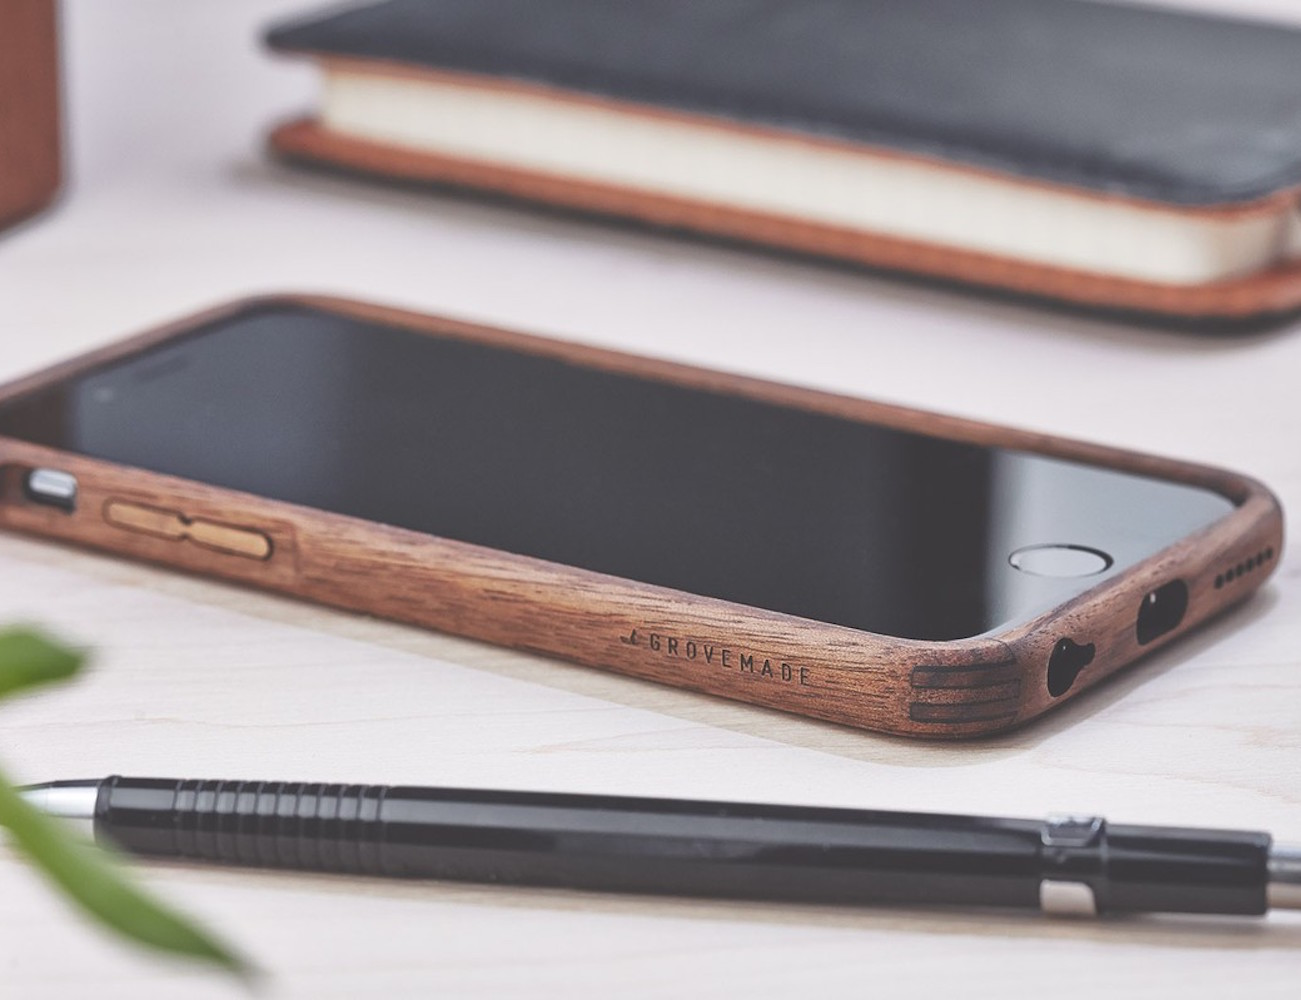 walnut-iphone-case-by-grovemade-02